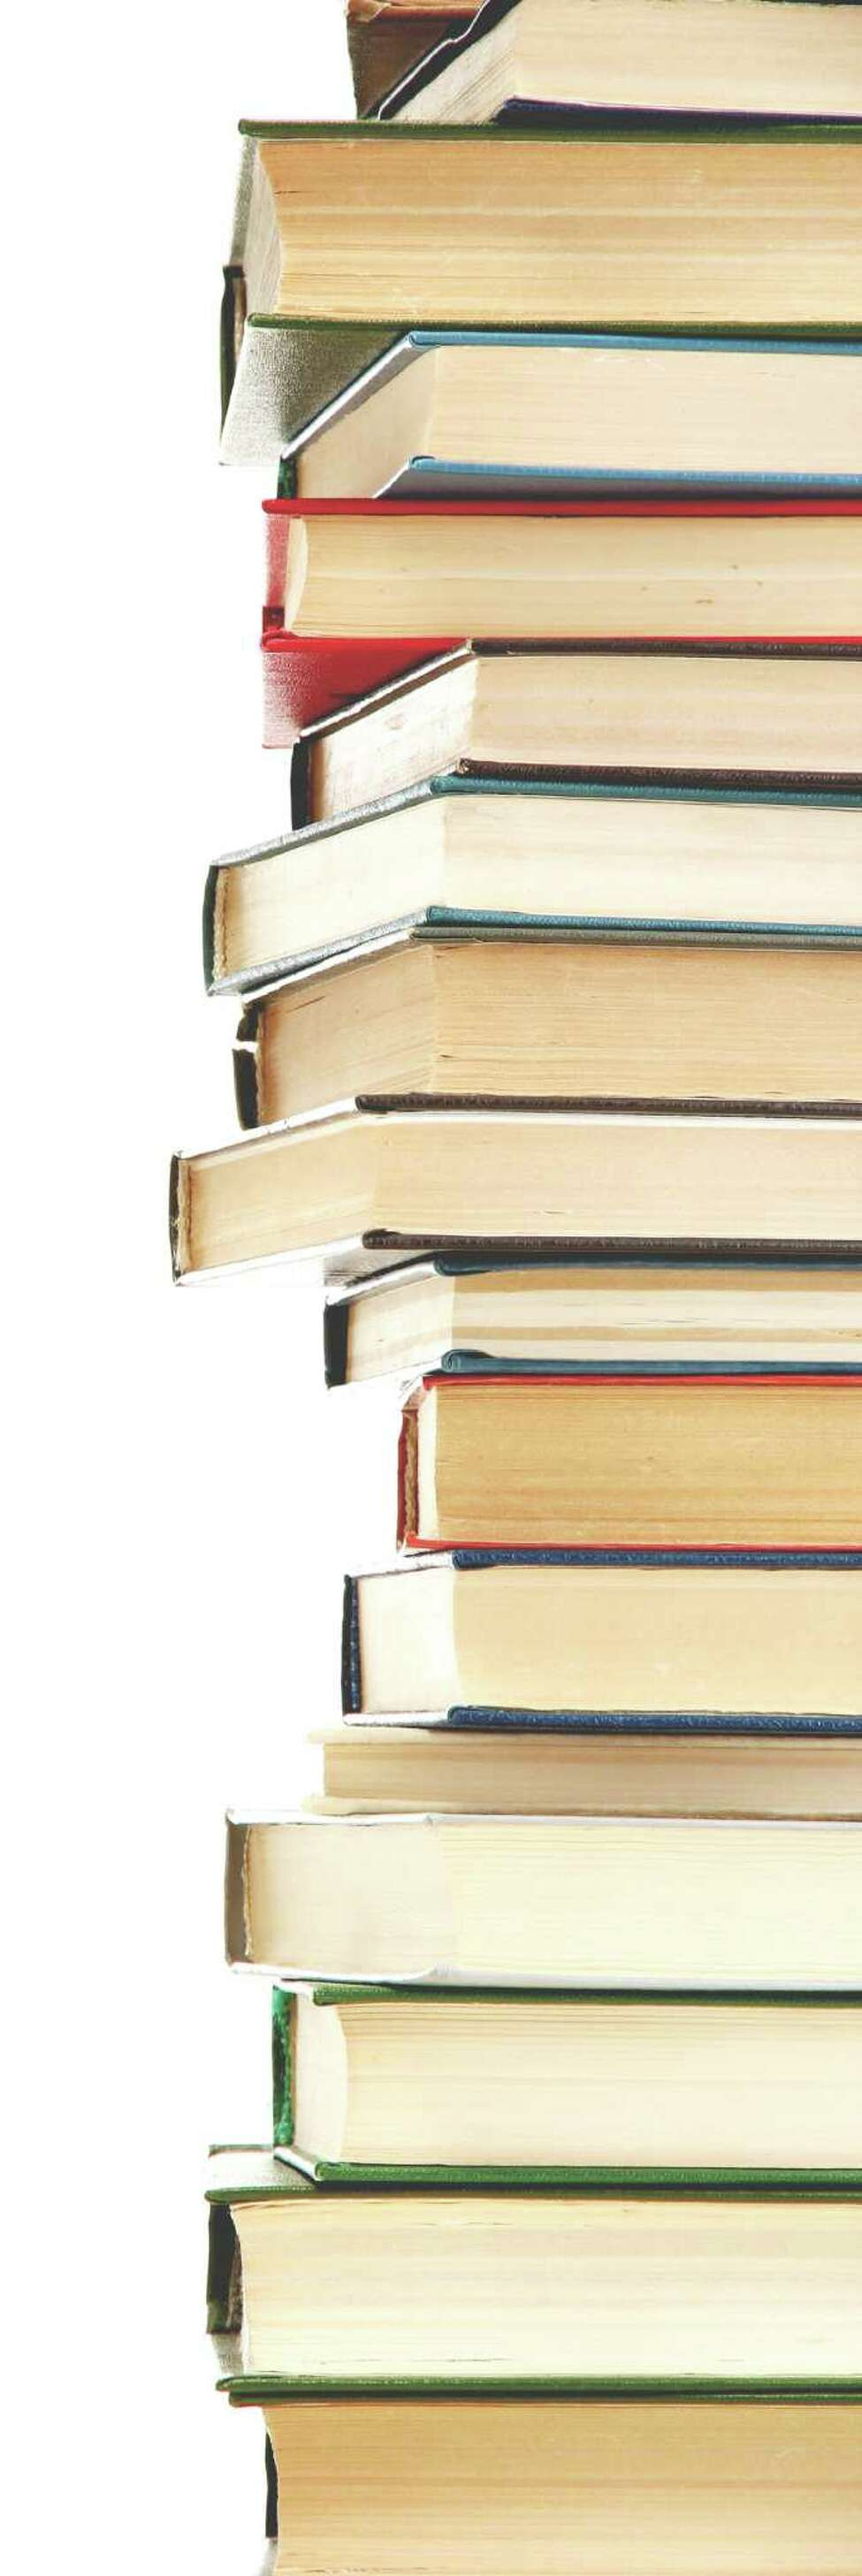 How to get textbooks at a steep discount. (Fotolia.com)